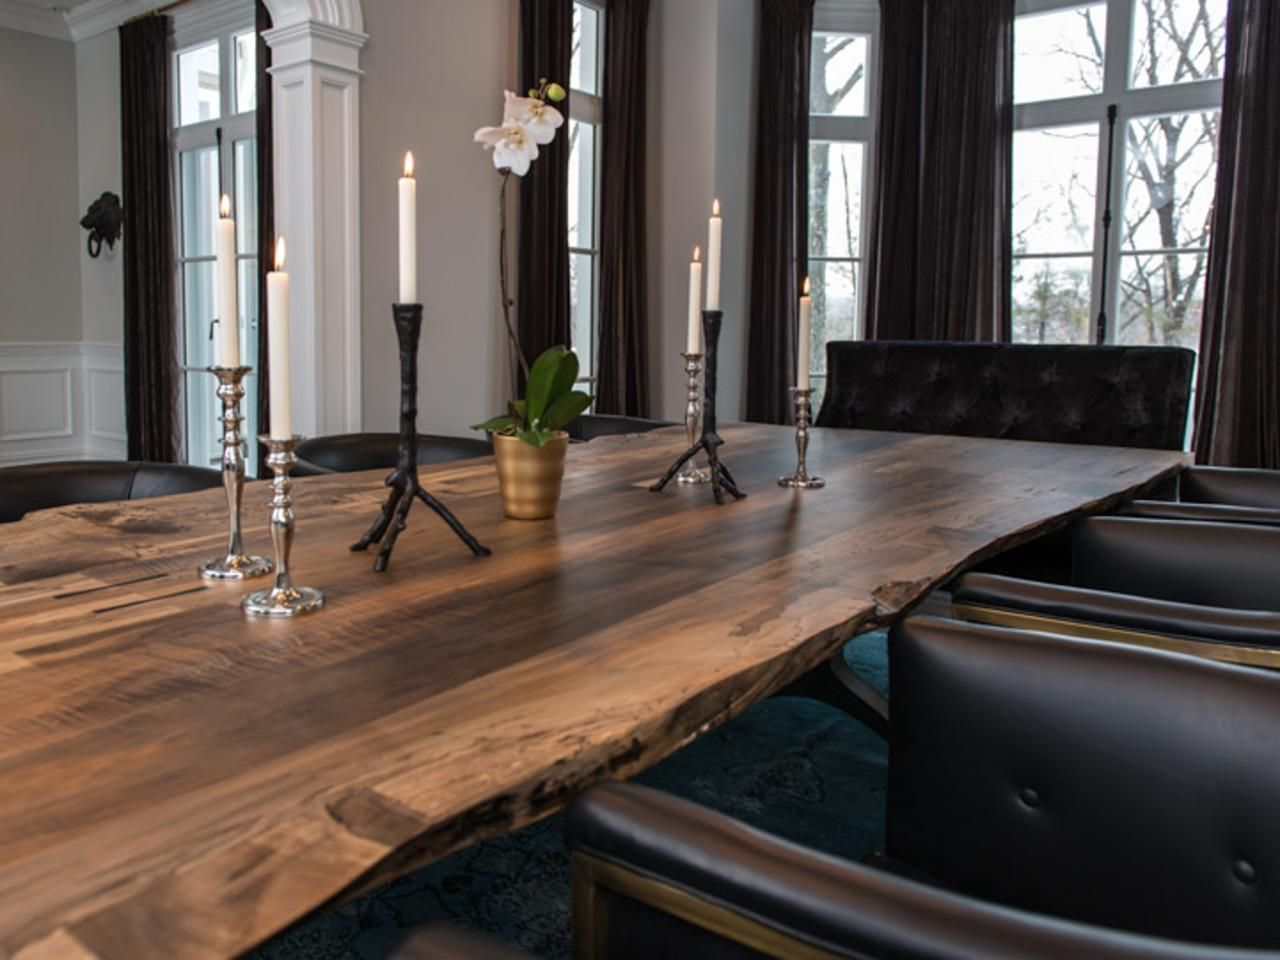 A Rustic Rough Hewn Slab Dining Table Brings A Splash Of Nature